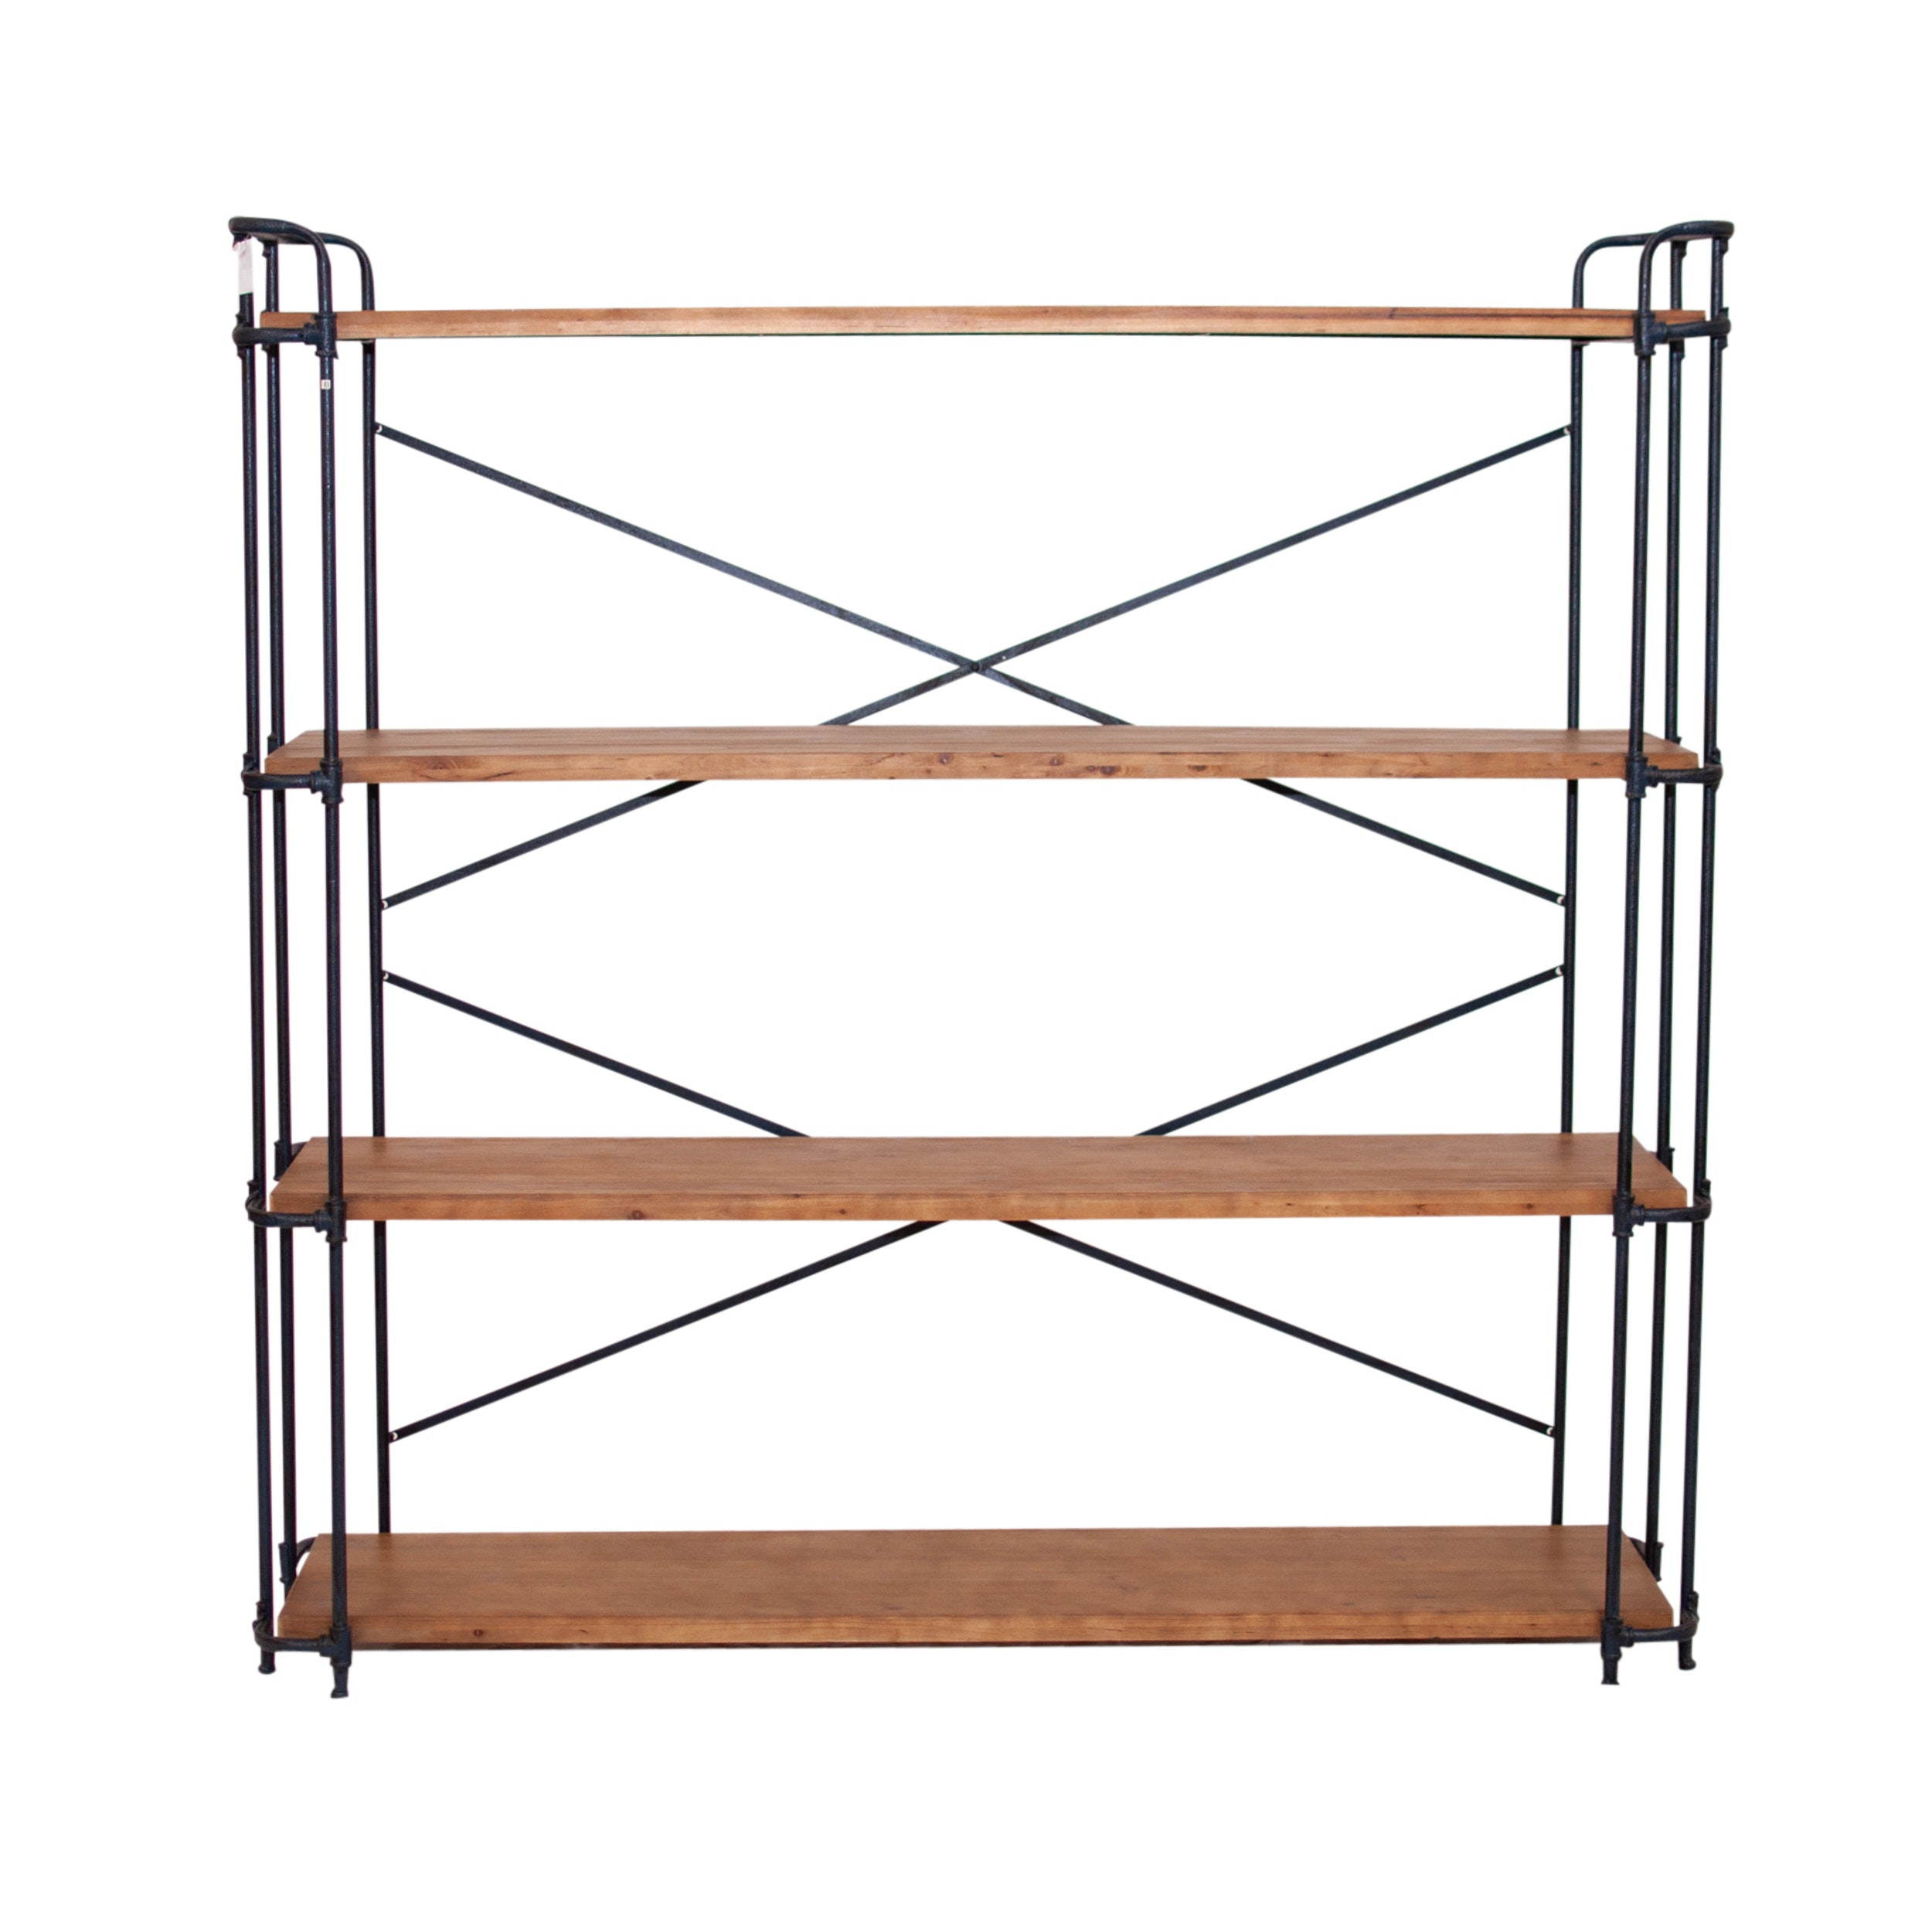 Industrial Wood and Metal Shelving Rack, Contemporary